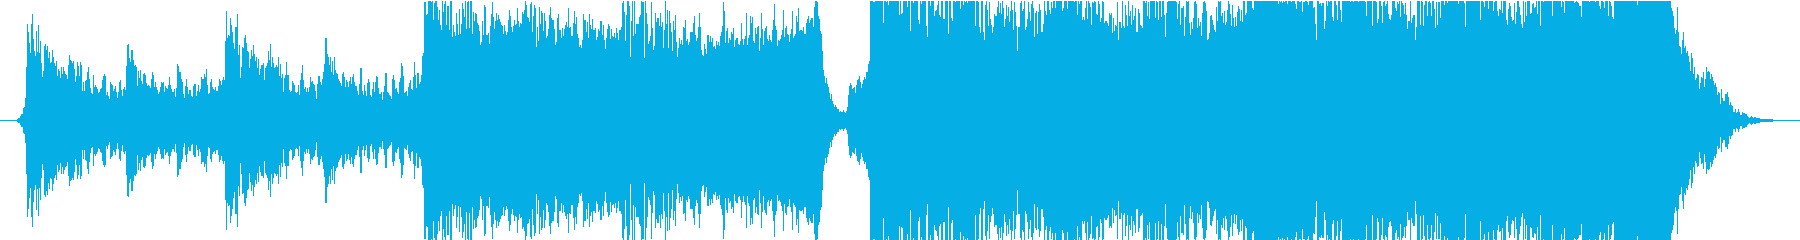 Epic Music's reproduced waveform